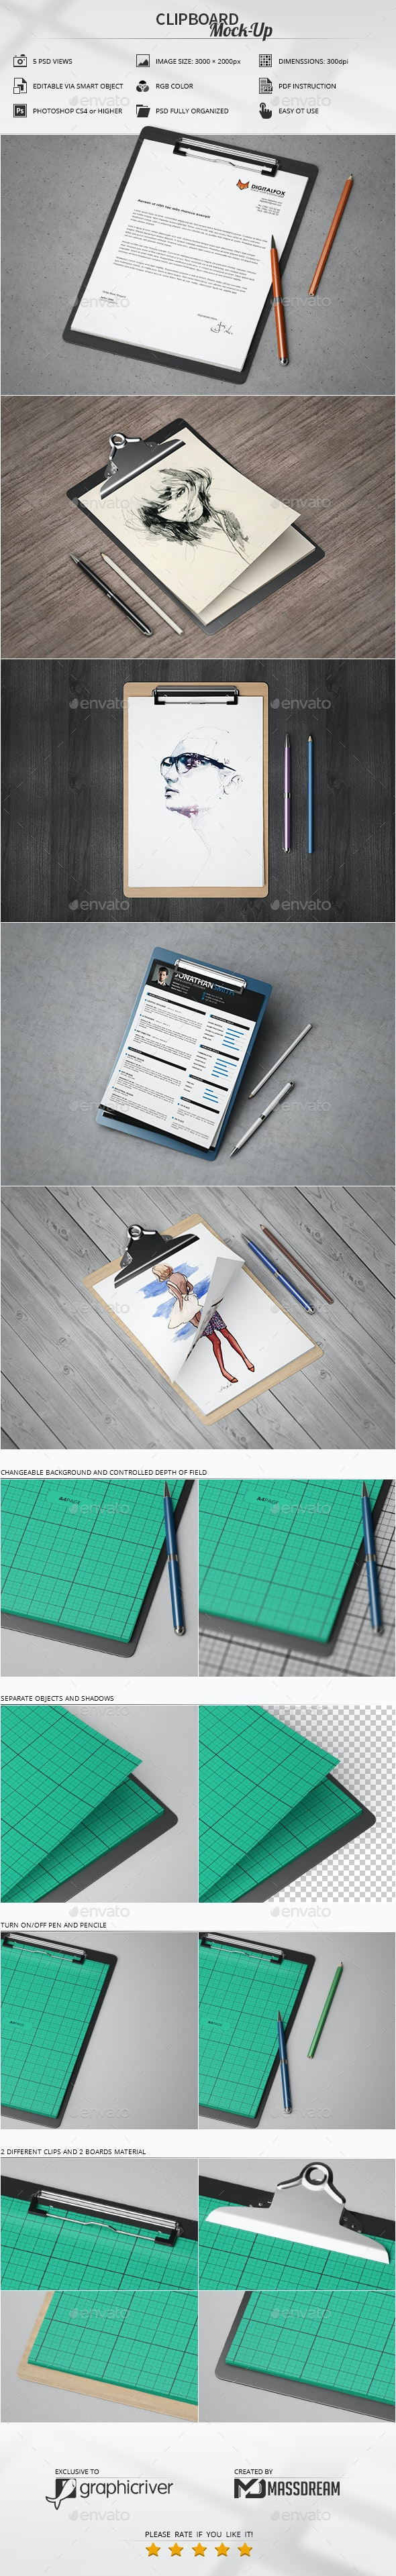 Clipboard Mock-Up - Miscellaneous Print